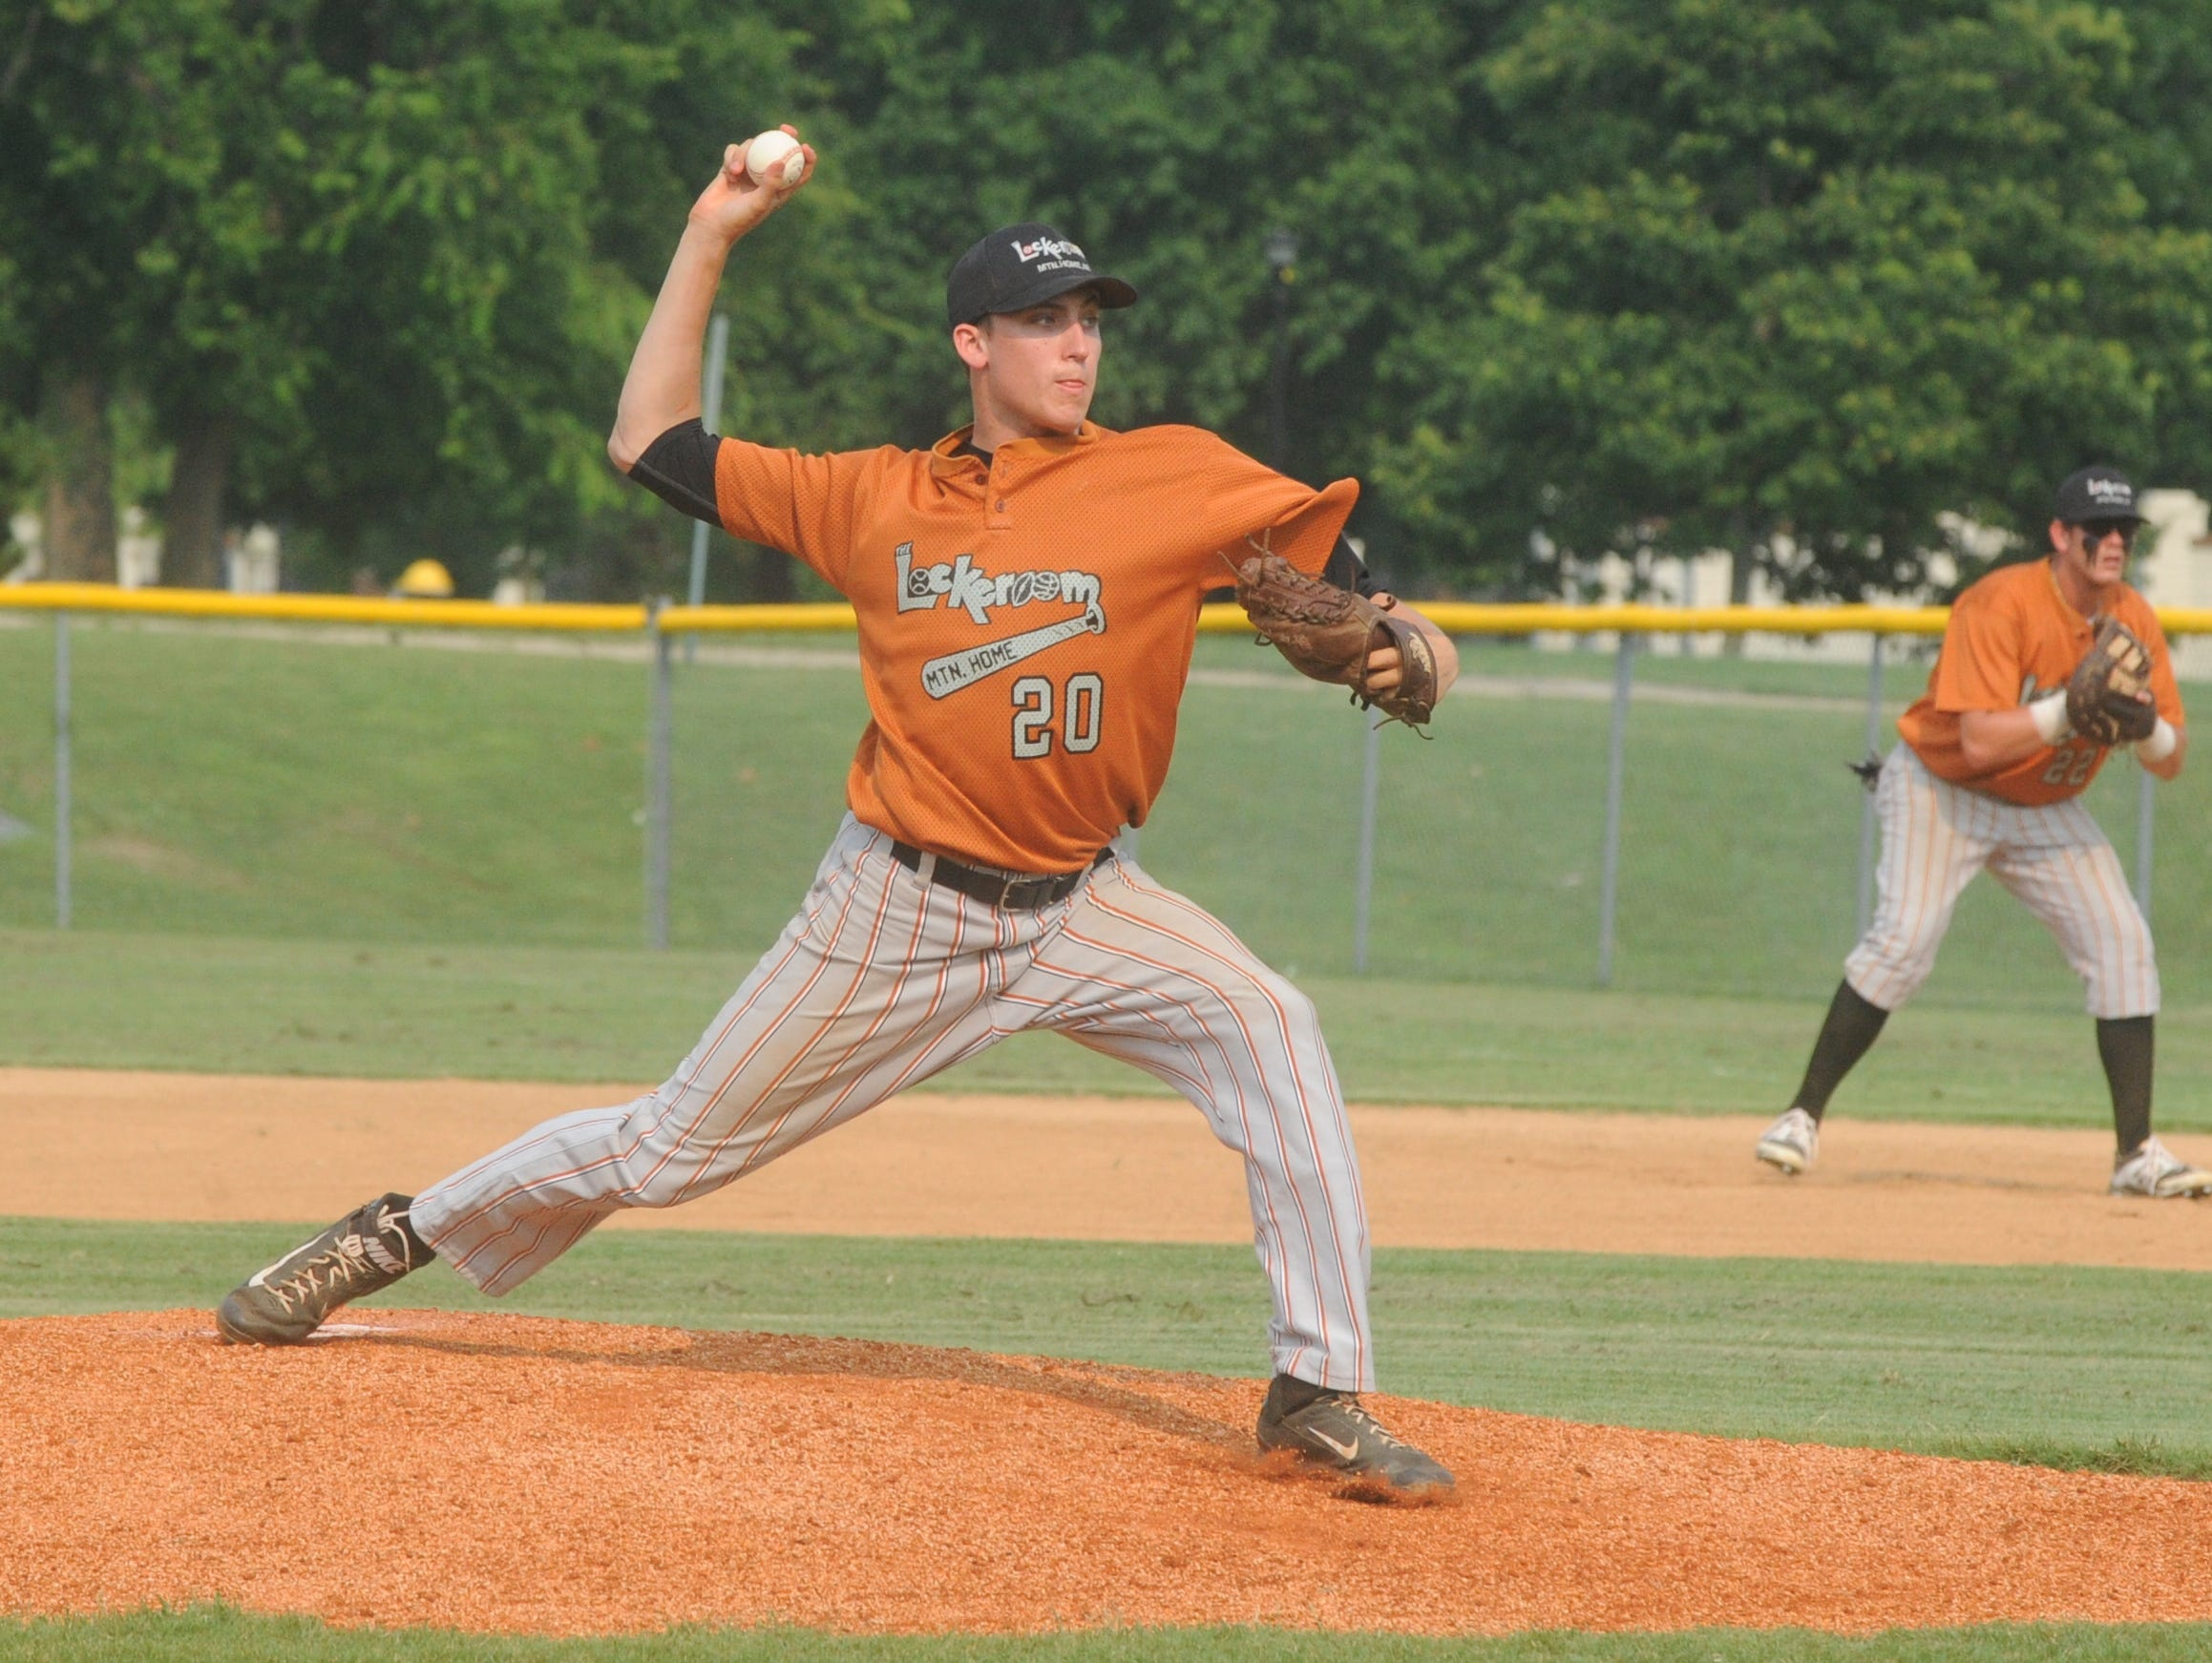 Lockeroom's Ryan Czanstkowski delivers a pitch in a recent game at Cooper Park.